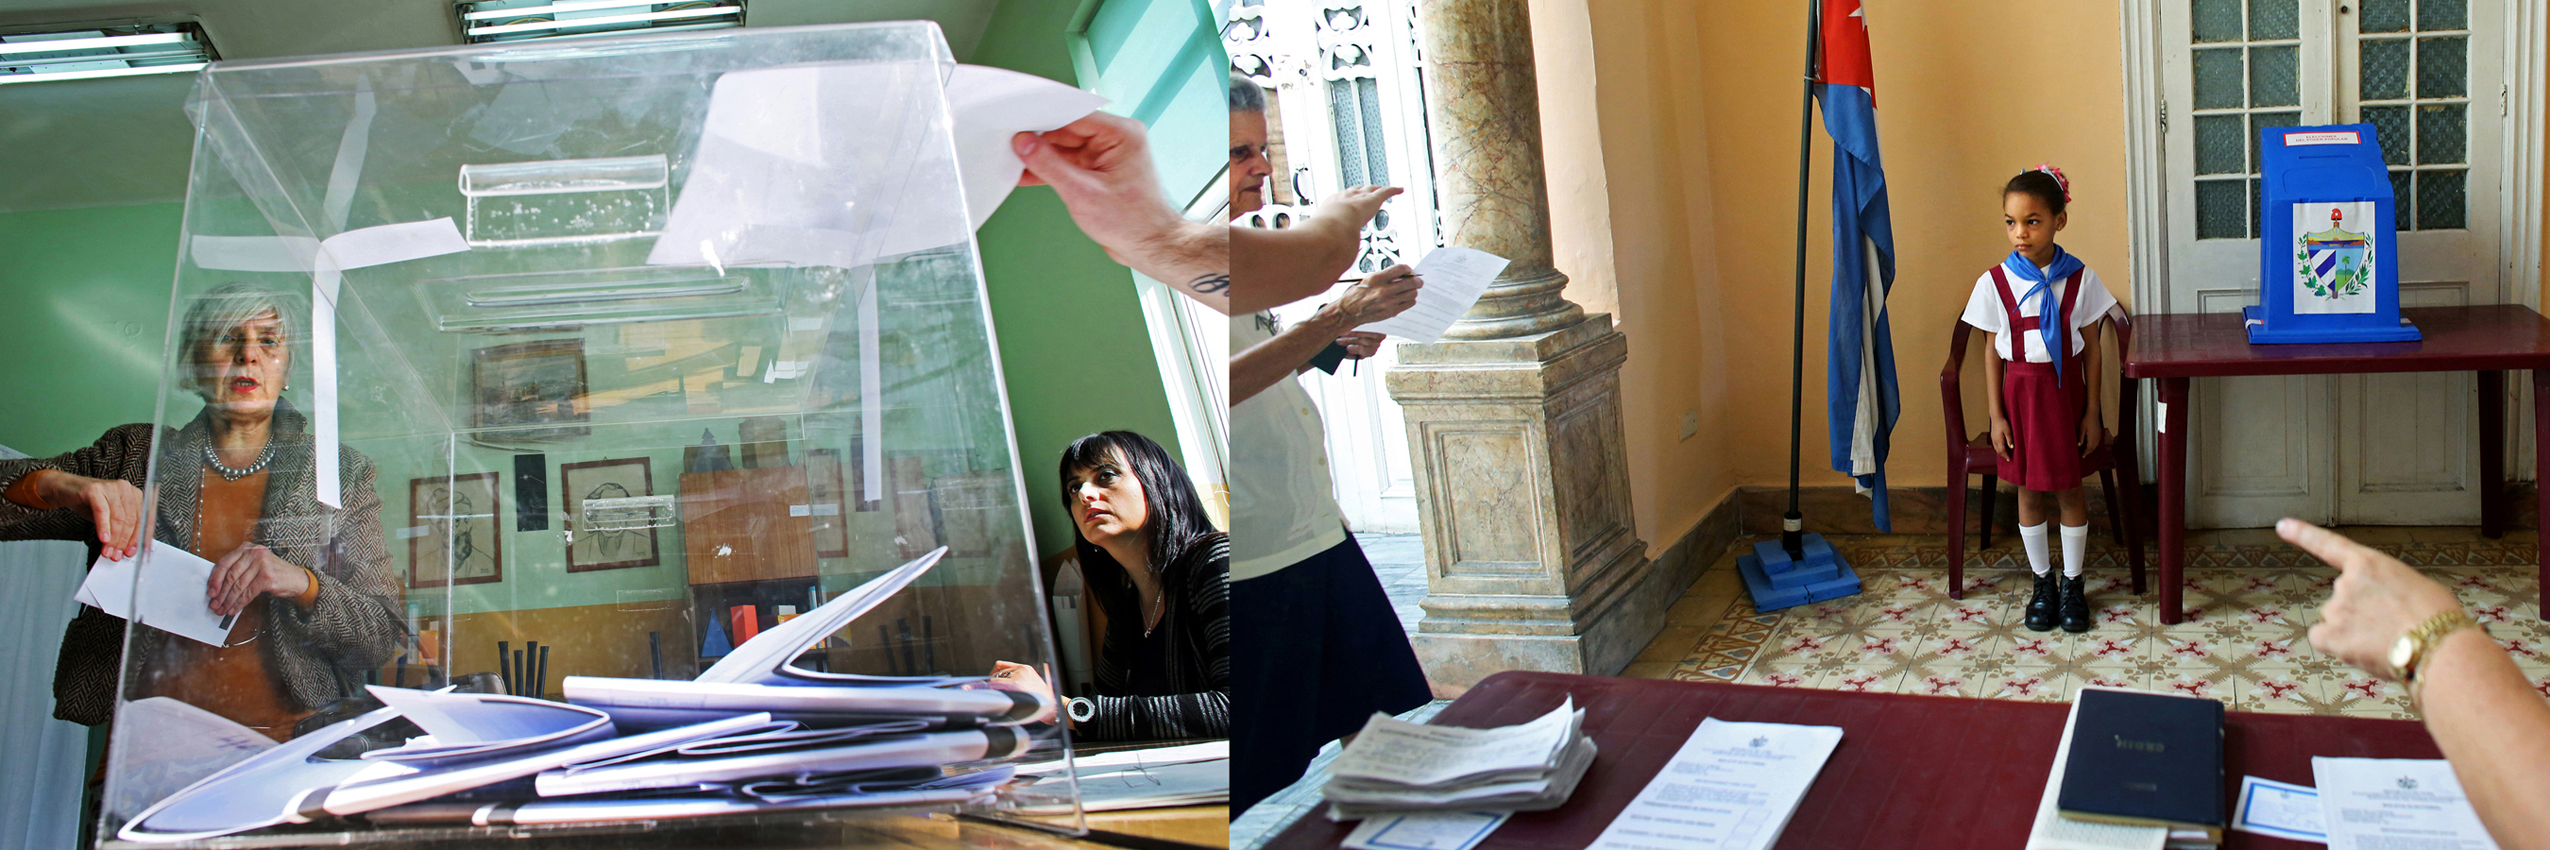 Left - On this day, October 5th, 2014, the United States held its Midterm Elections - its multi-party ticket an unimaginable reality in autocratic Bulgaria pre-1989. (R-L) Here, Simona Kostova, from Bulgaria's voting commission, watches as a woman prepares to place her vote in the ballot box during Parliamentary elections in the nation's capital, Sofia. Despite a month-long vacillations - and that only 49% of the population turned up to vote - party leaders narrowly avoided reelections, with former prime minister and leader of center-right party GERB Boyko Borisov reinstated at the post.Right - Children wearing the uniform of communist youth are directed to salute {quote}Votó!{quote} ({quote}S/he voted!{quote}) as a woman places her ballot in Cuba's Elecciones Parciales (Partial Elections) to elect delegates to the Municipal Assemblies of People's Power, the country's unicameral parliament, on April 19, 2015 in Havana, Cuba. The delegates function as district representatives for a 2.5 year term.Elementary schoolchildren in many Communist countries (Cuba and pre-1989 Bulgaria included,) wear scarves as part of the uniform of the children's Communist youth - blue or red in color depending on their age. Little Pioneers - members of the José Martí Pioneer Organization for children operated by the communist party in Cuba - are often sent to people's homes to motivate citizens to the polls. Voting is not mandatory, but frowned upon if not exercised. I've used diptychs to bridge one country's past - communist Cuba - to another country's present - post-1989 Bulgaria - to show that political ideals, its profiteers and its victims, can remain unchanged by time or geography.